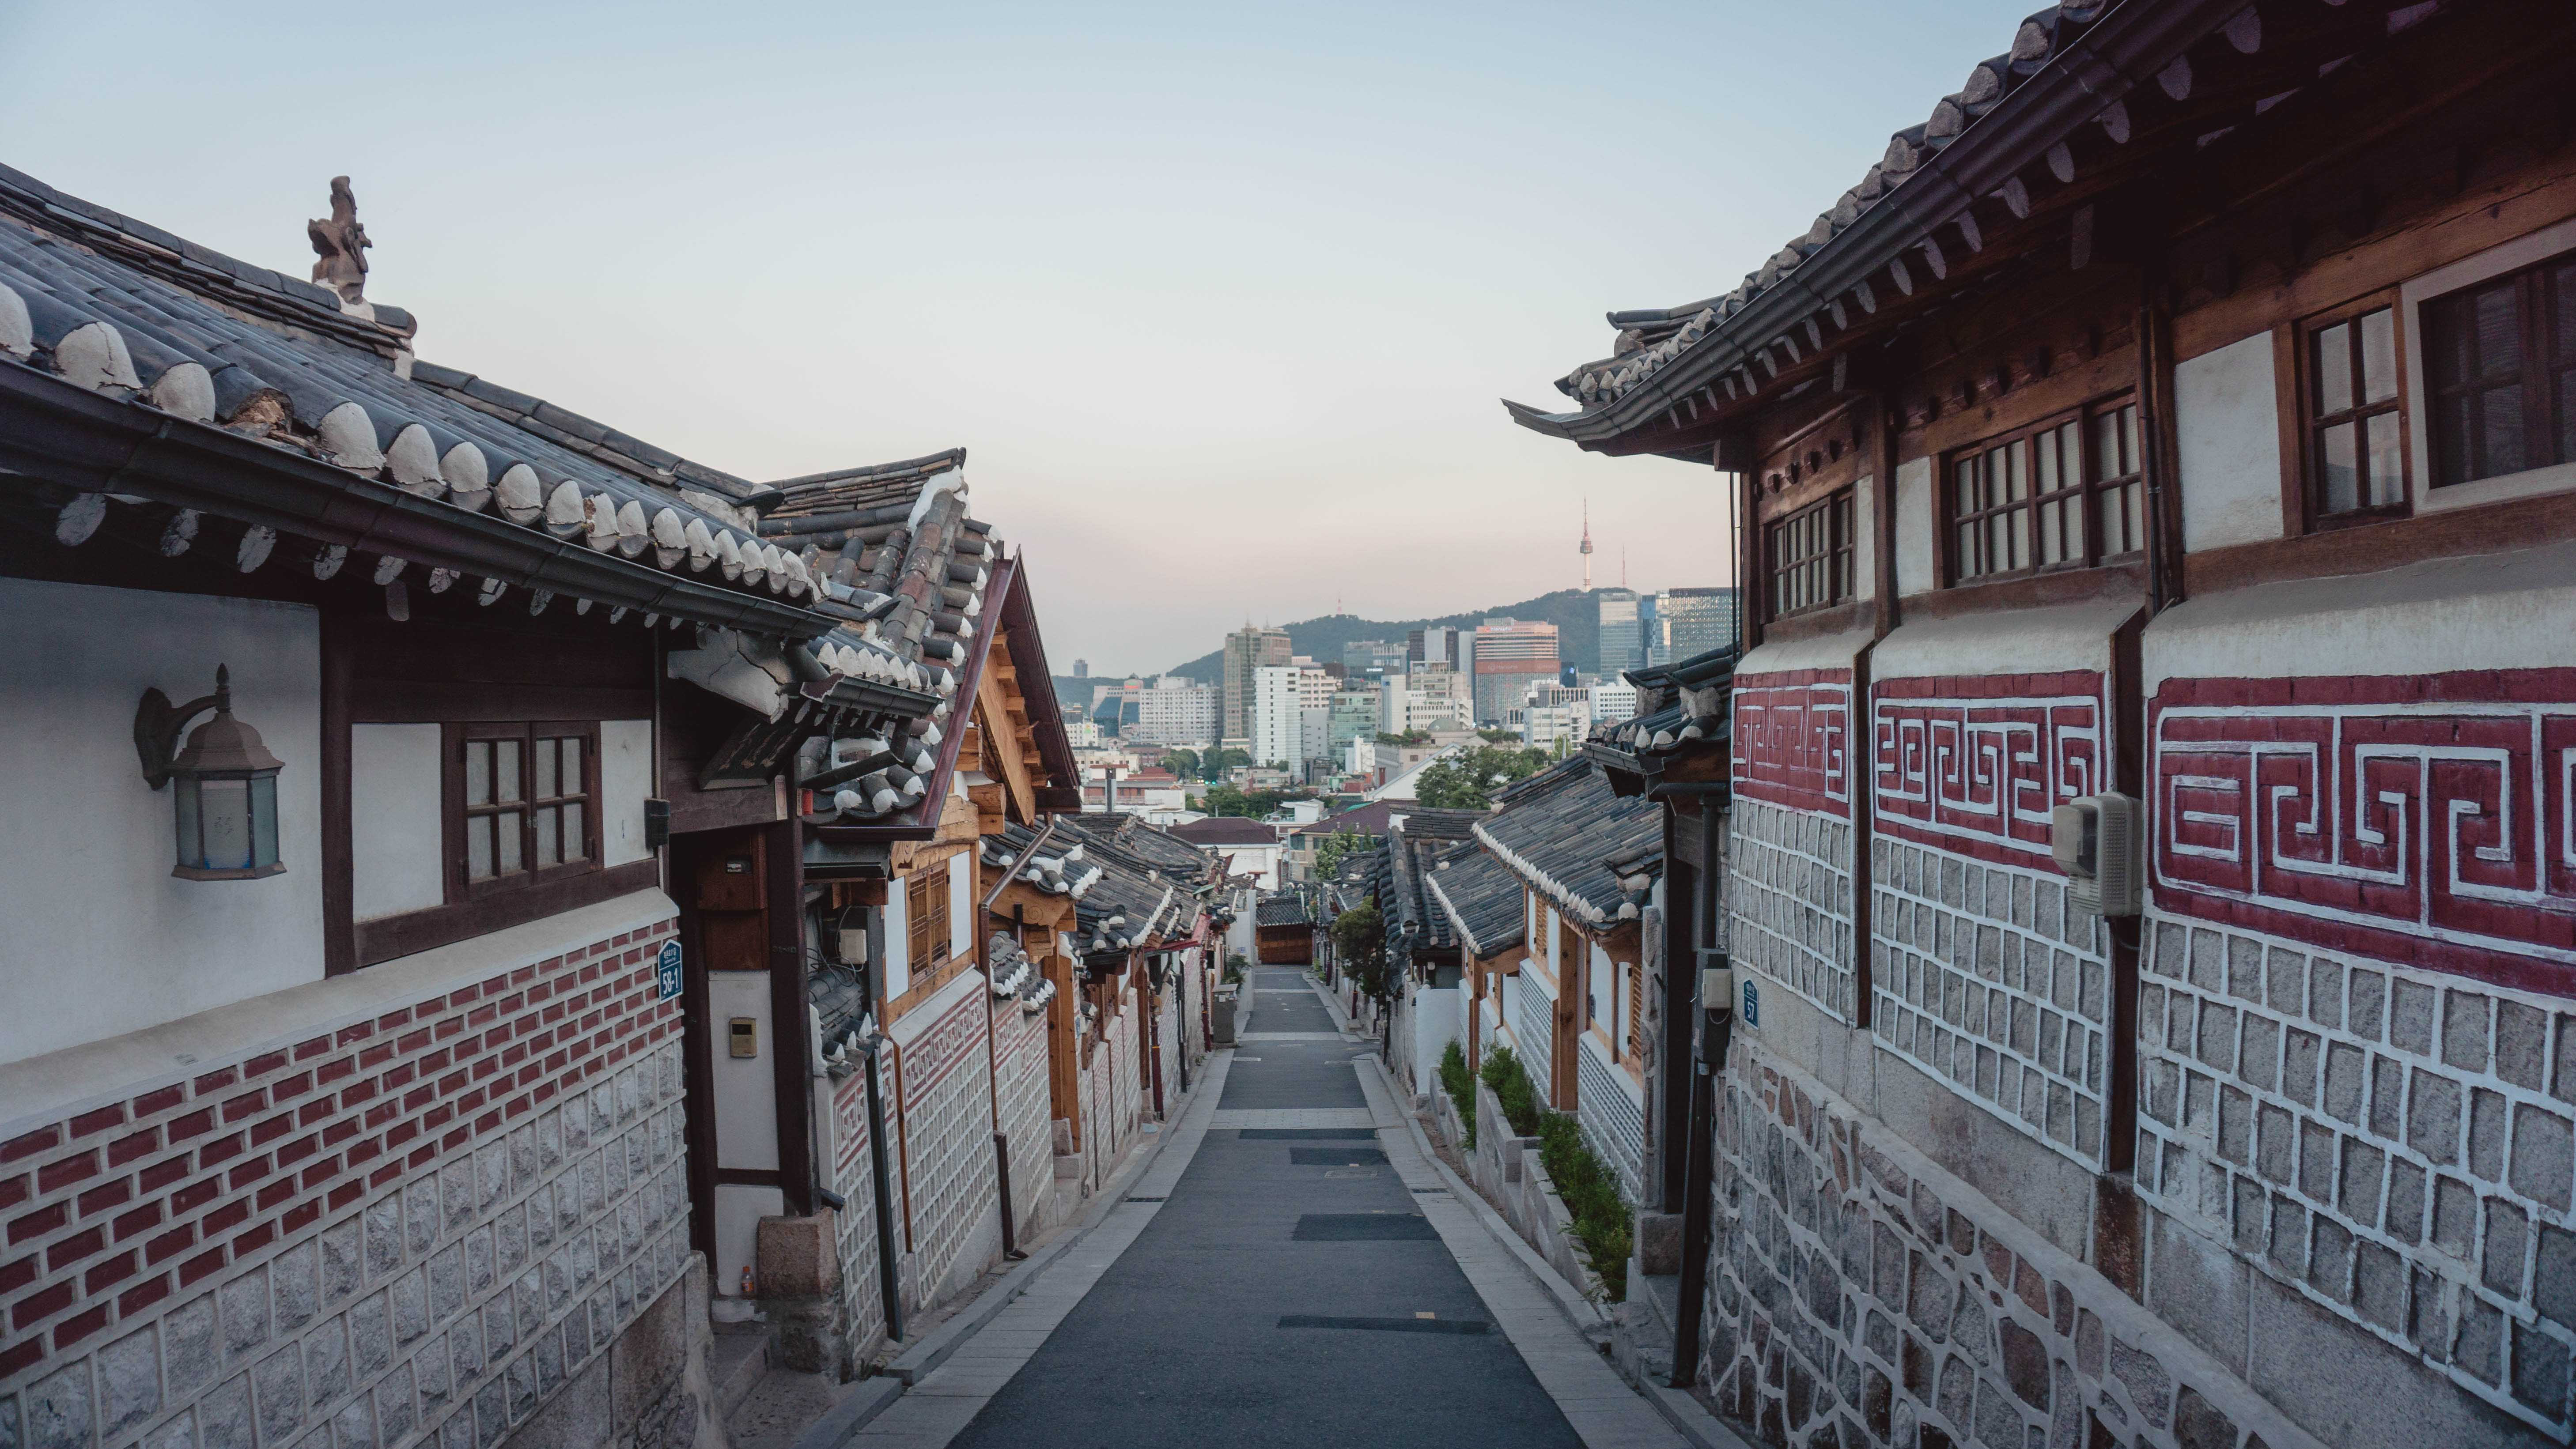 A show of Seoul highrises, taken from between two traditional homes